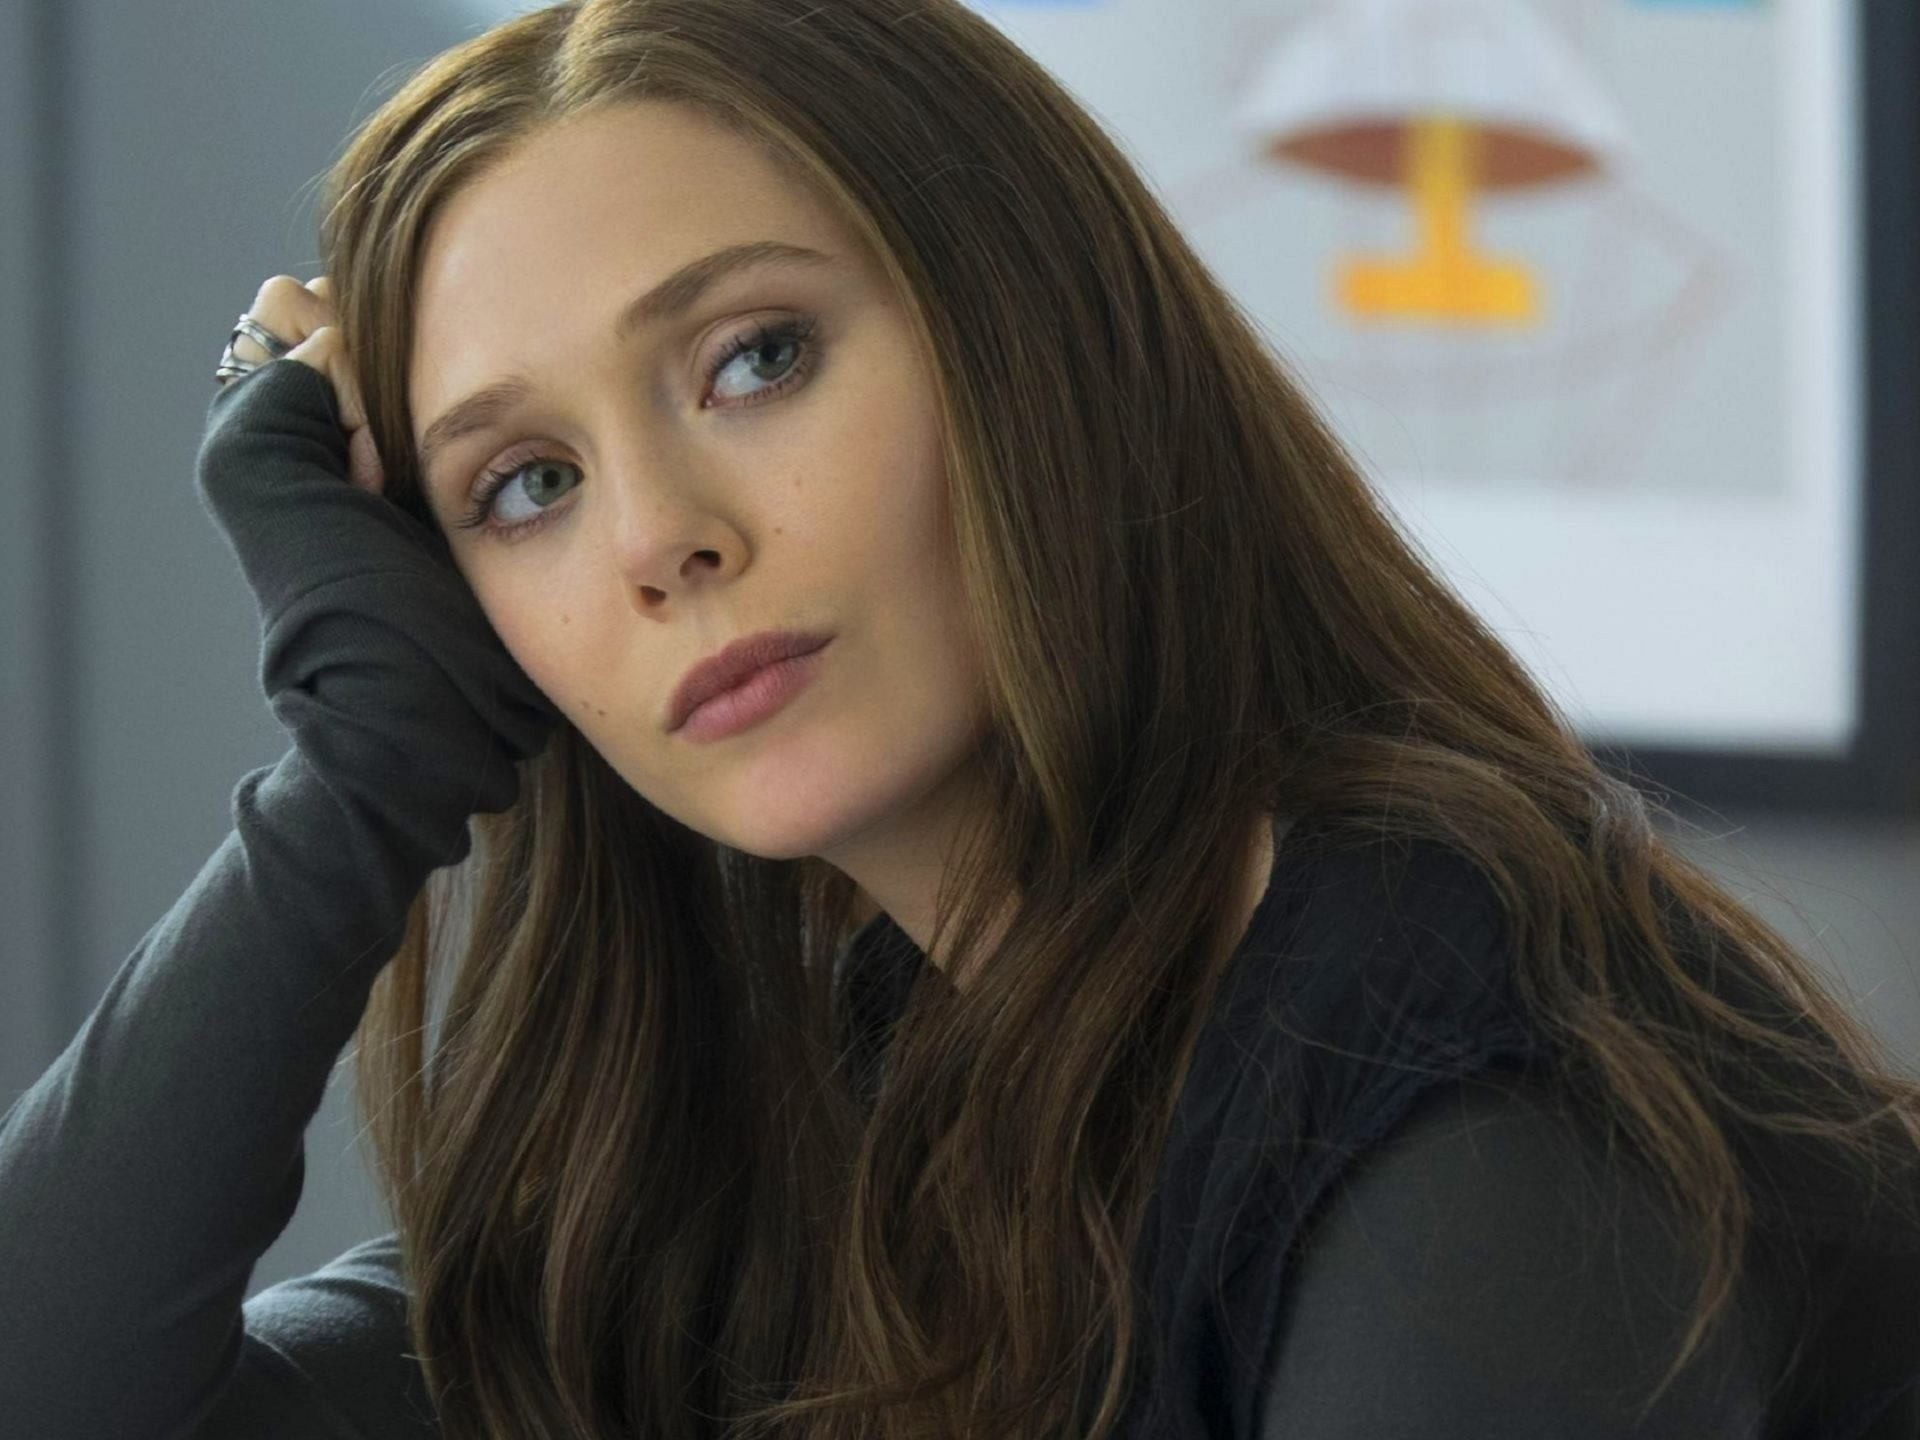 Elizabeth Olsen 2016 HD Wallpapers 1920x1440